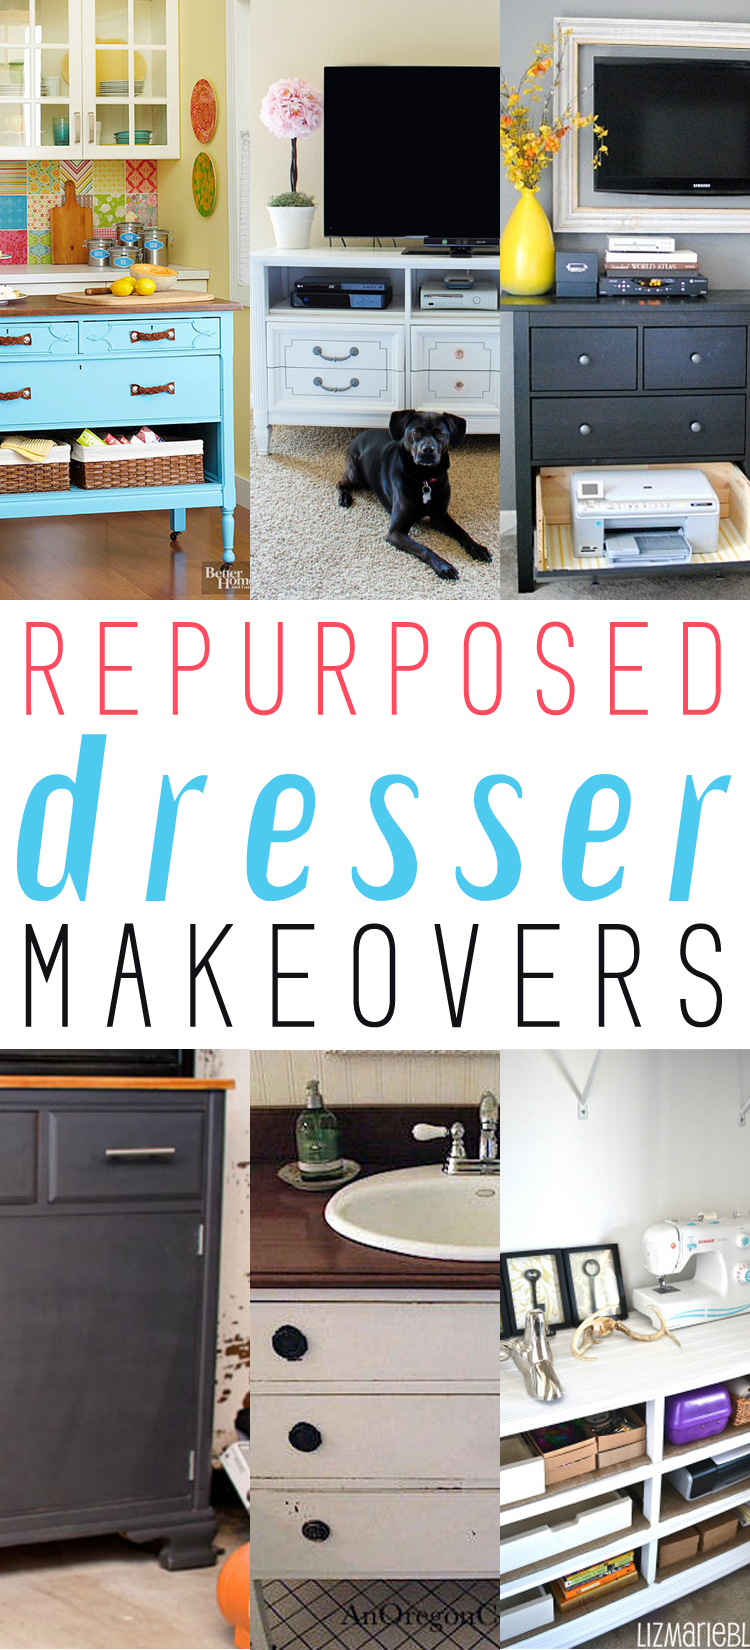 http://thecottagemarket.com/wp-content/uploads/2015/10/RepurposedDresser-TOWER-001.jpg